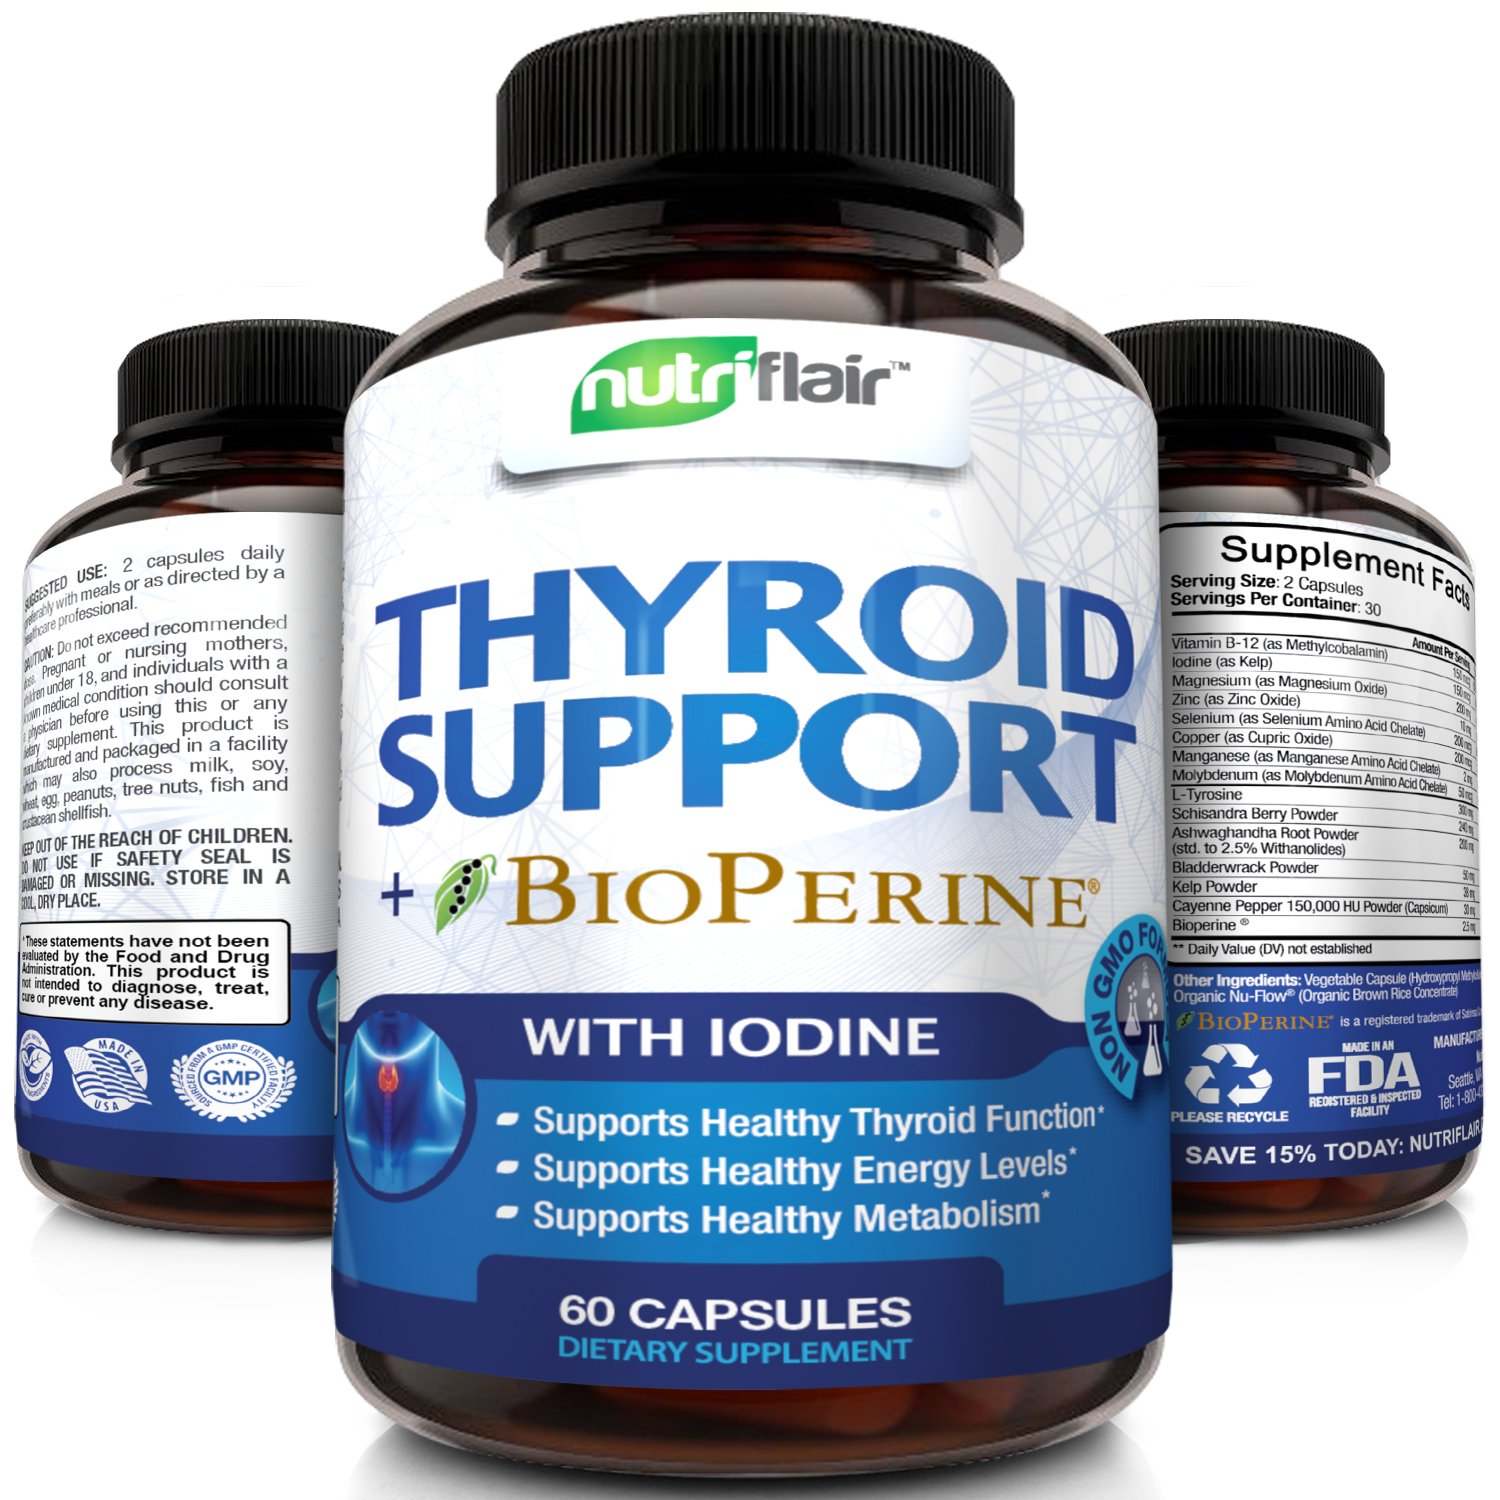 Thyroid Support Complex with Iodine + BioPerine Black Pepper - Vegetarian Capsules Natural Supplement - Energy & Focus Formula, Boosts Brain Function & Metabolism, Concentration, with B12, Ashwagandha by NutriFlair